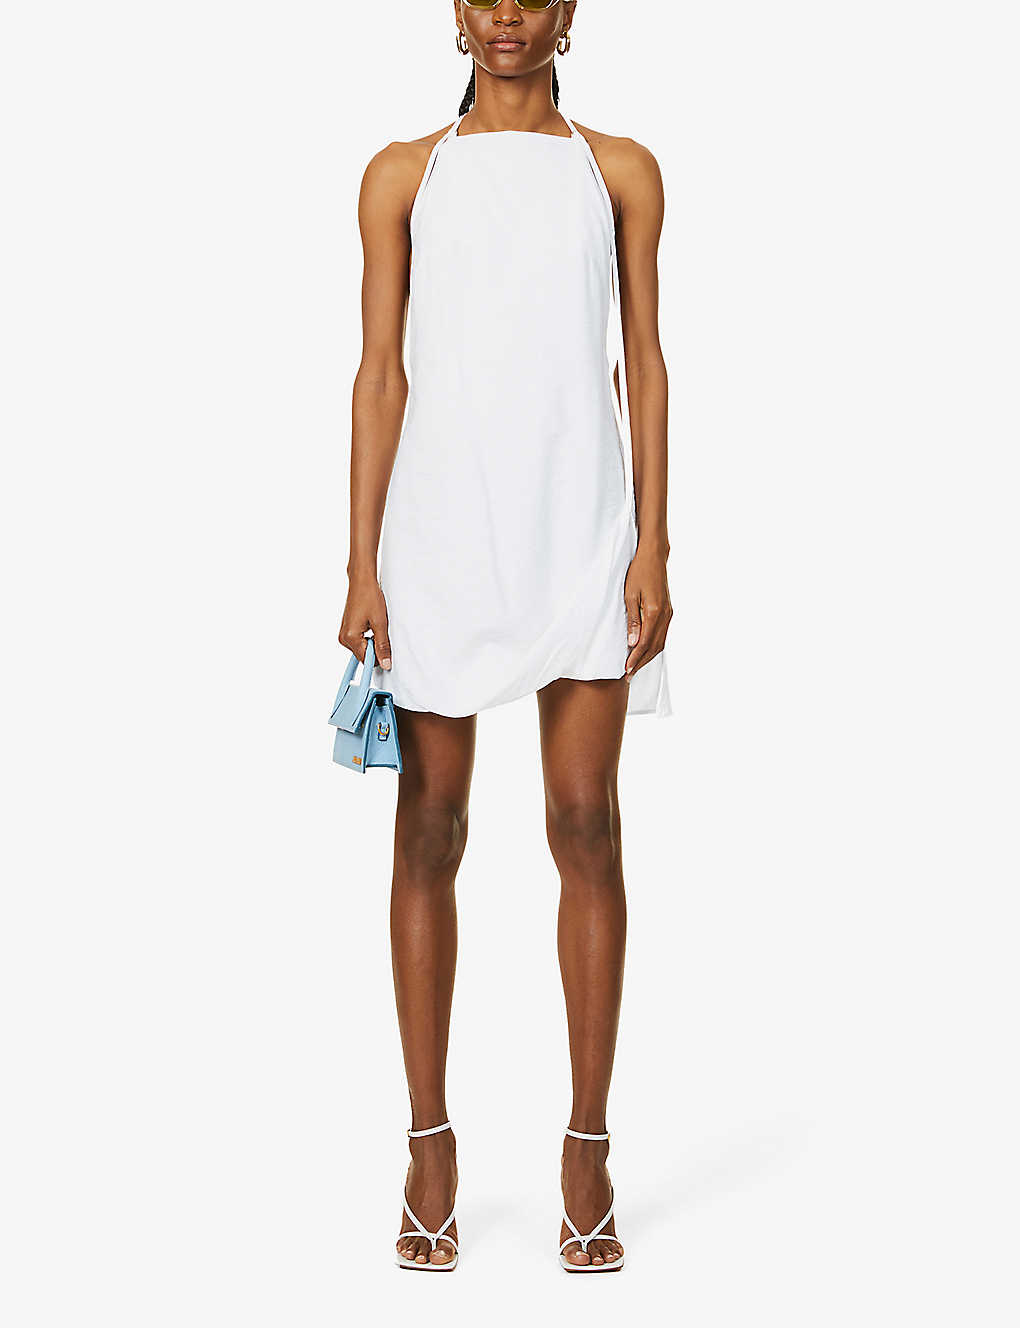 JACQUEMUS: La Robe Figuerolles woven mini dress